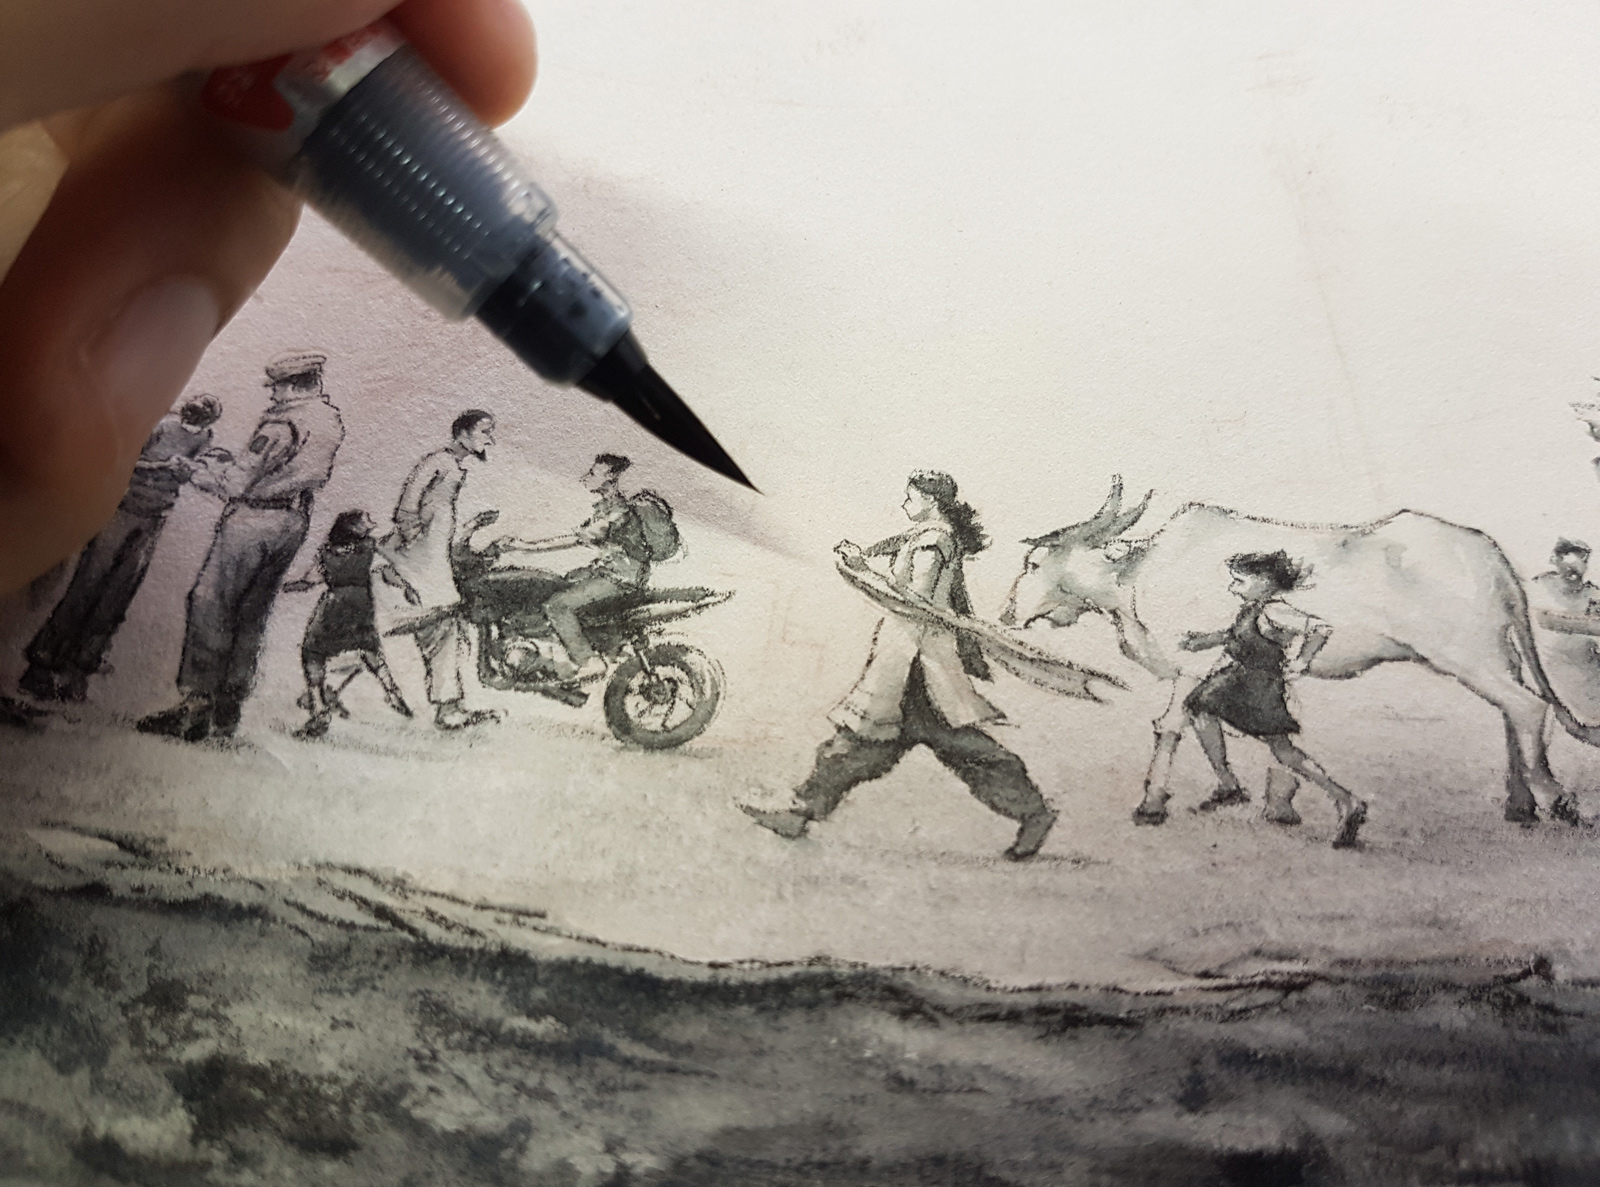 Inking very tiny people!